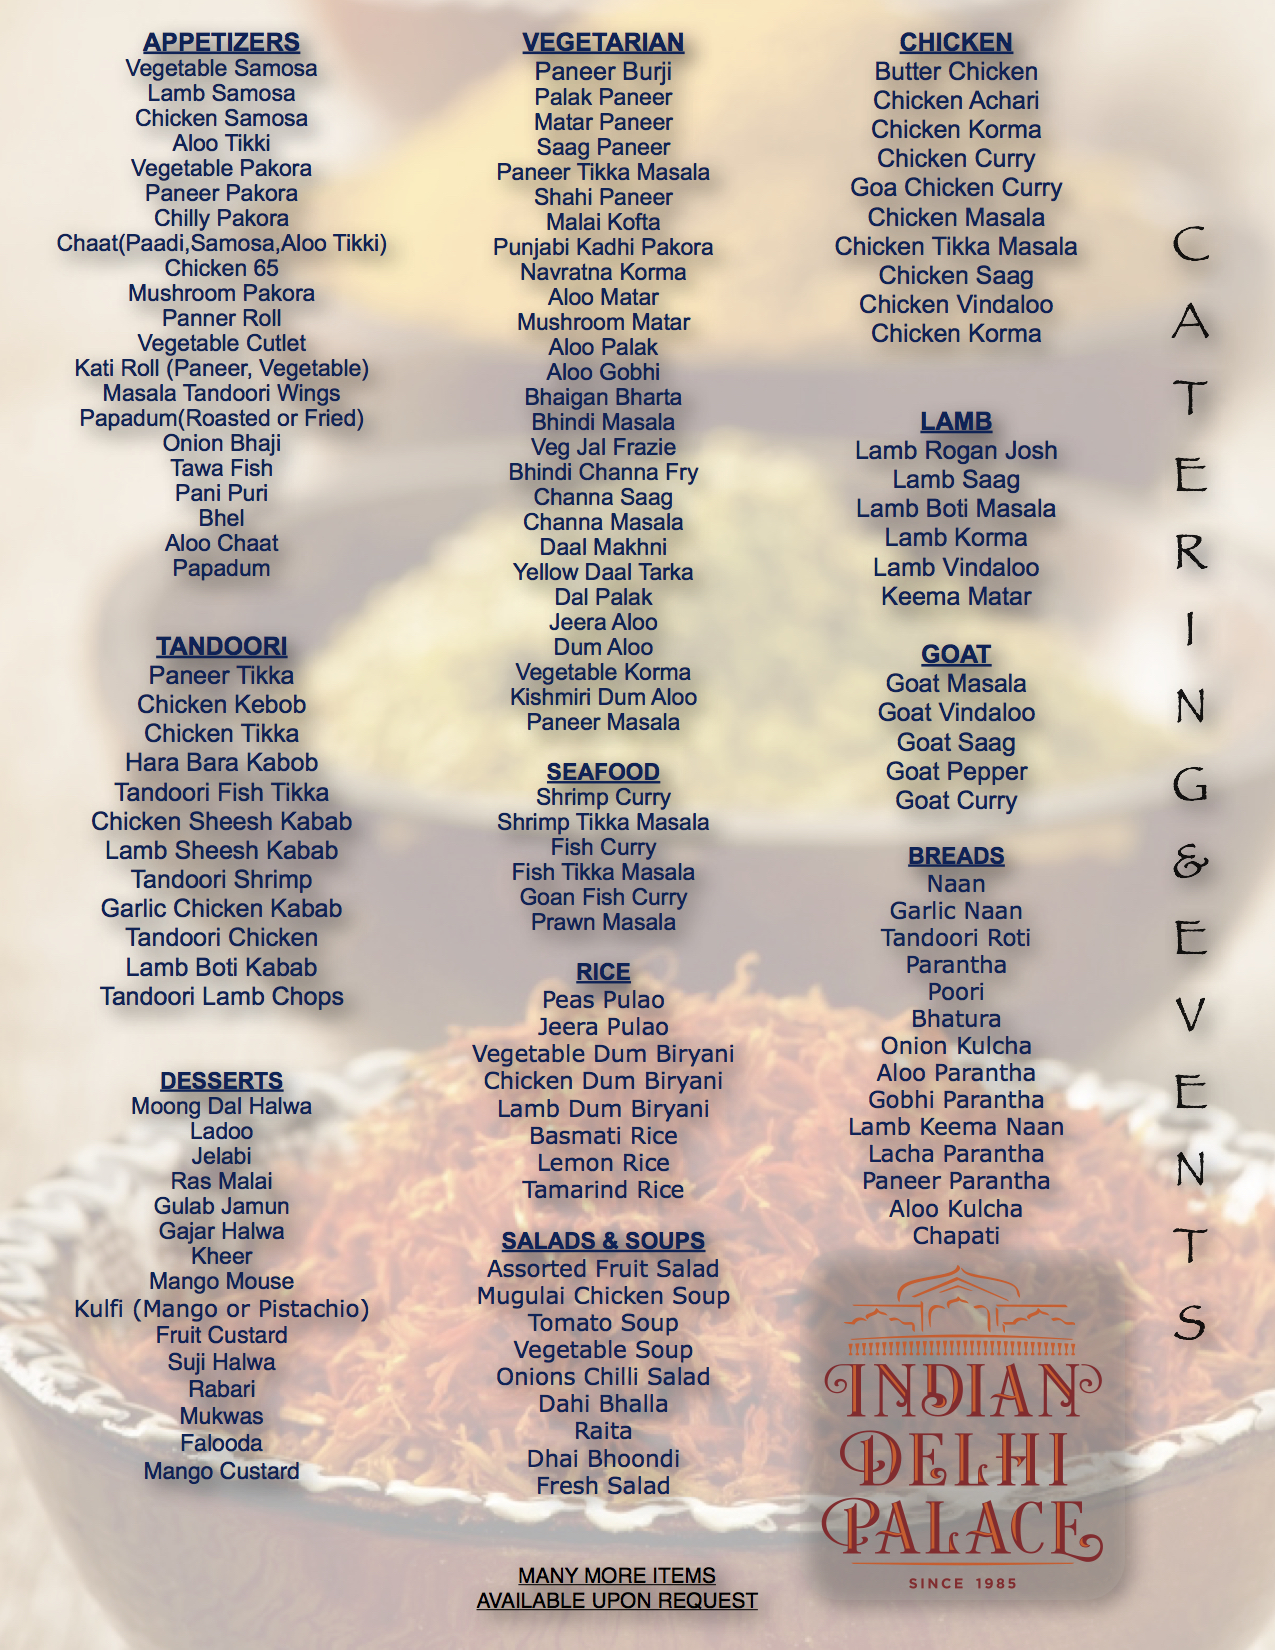 Indian Delhi Palace Catering